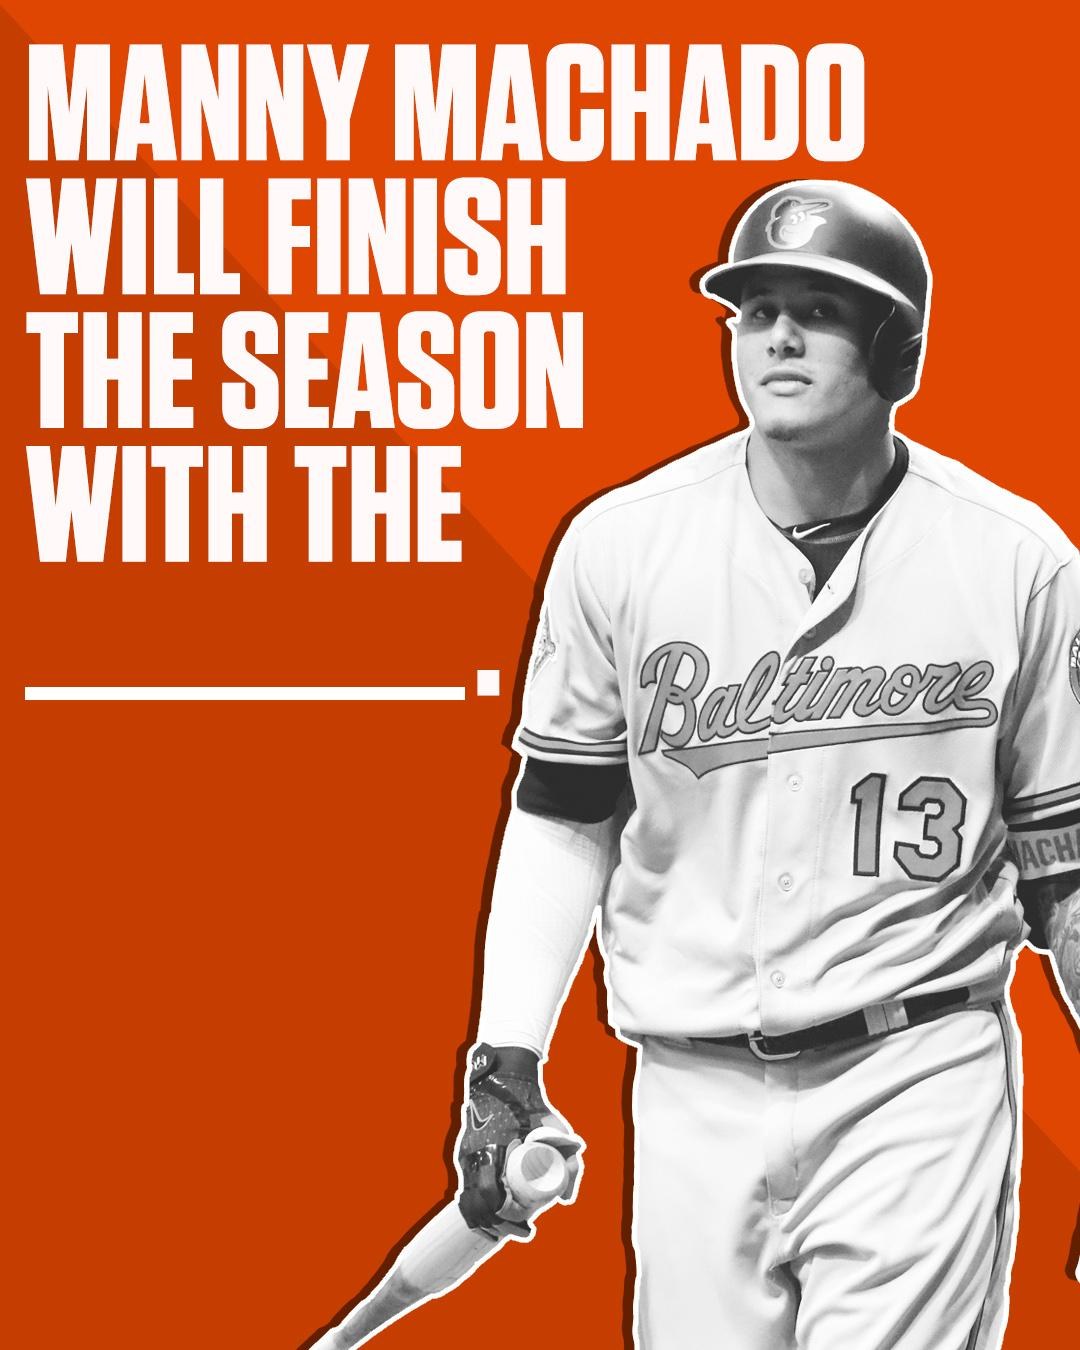 Will Manny Machado be on the move this season? https://t.co/01oSUd7GhN